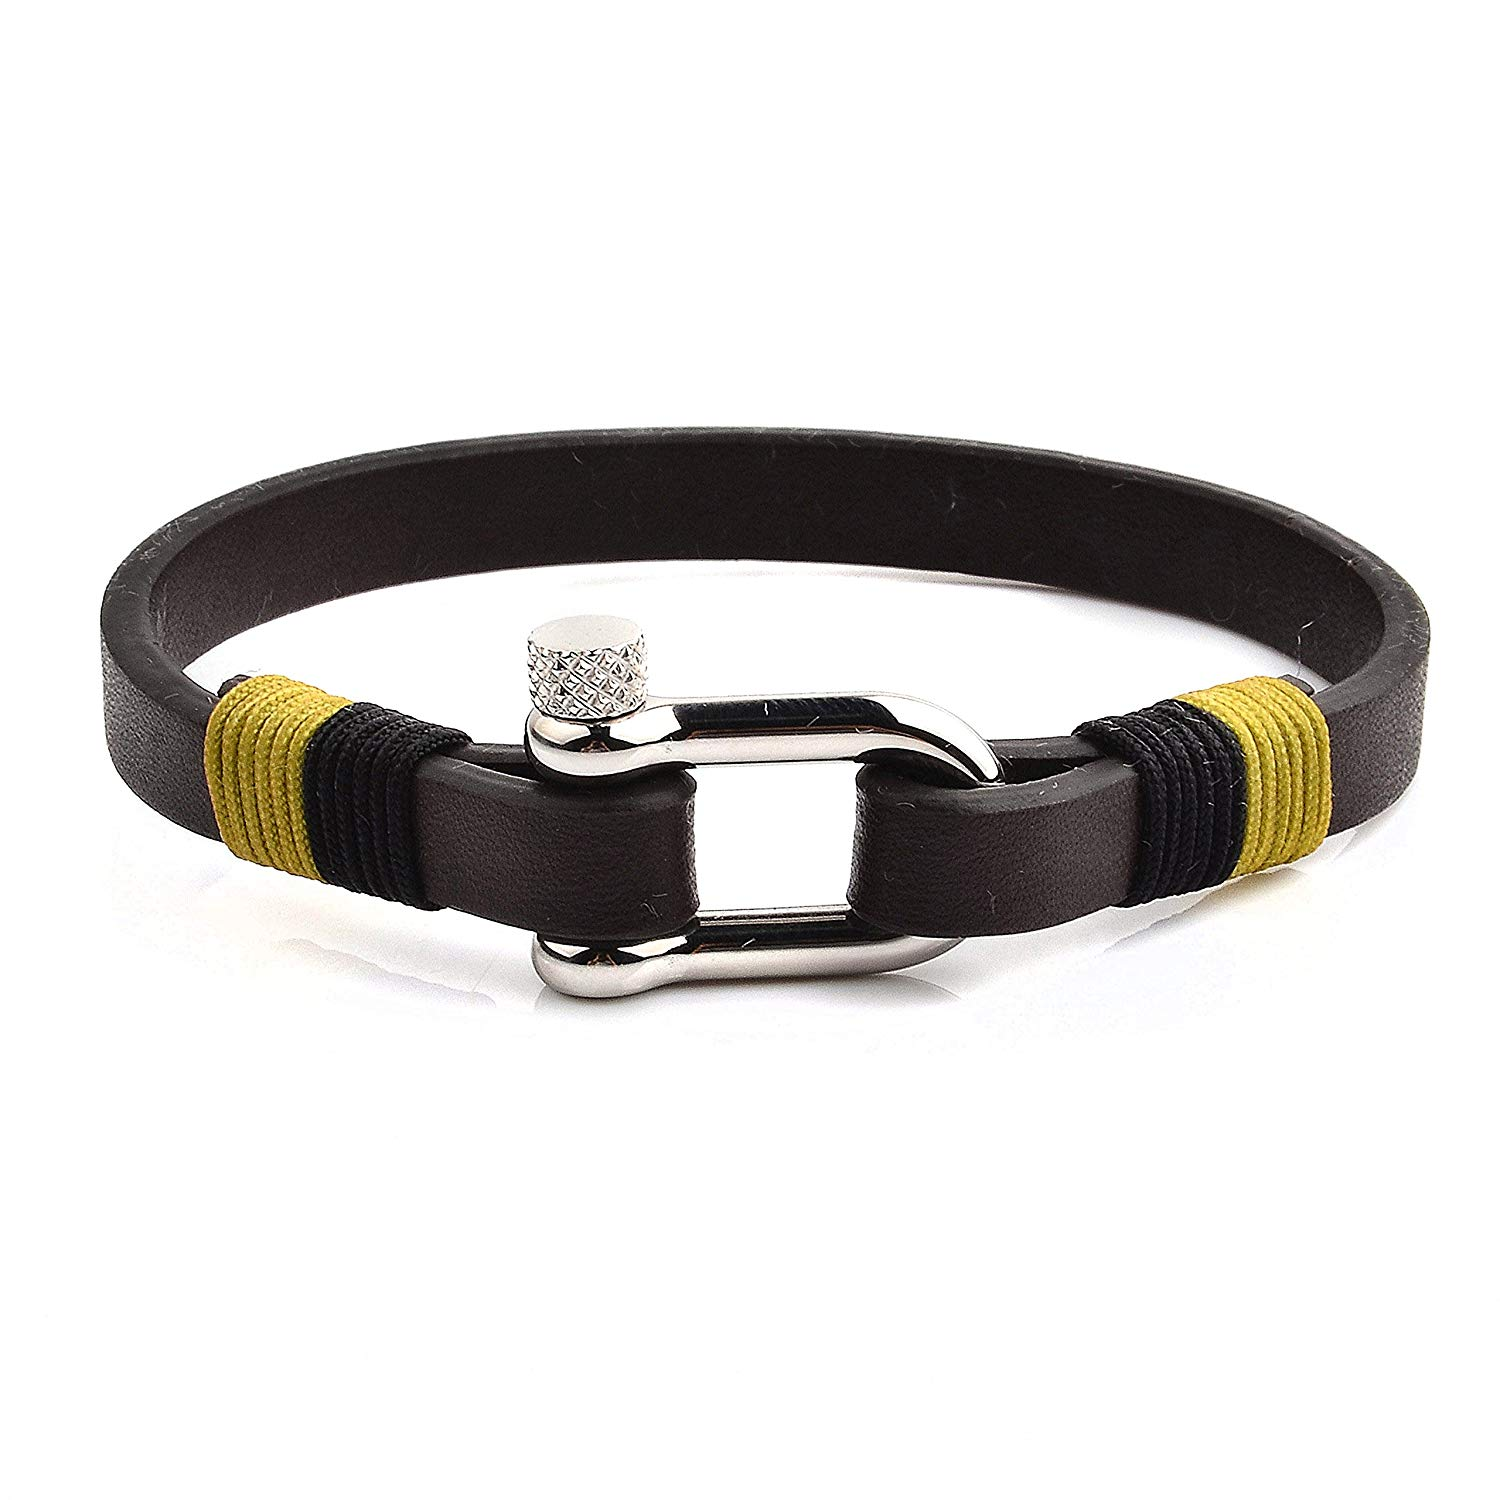 0cc89d788 Crucible Brown Flat Leather Stainless Steel Screw Clasp Bracelet (8mm Wide)  - 8.5 Inches